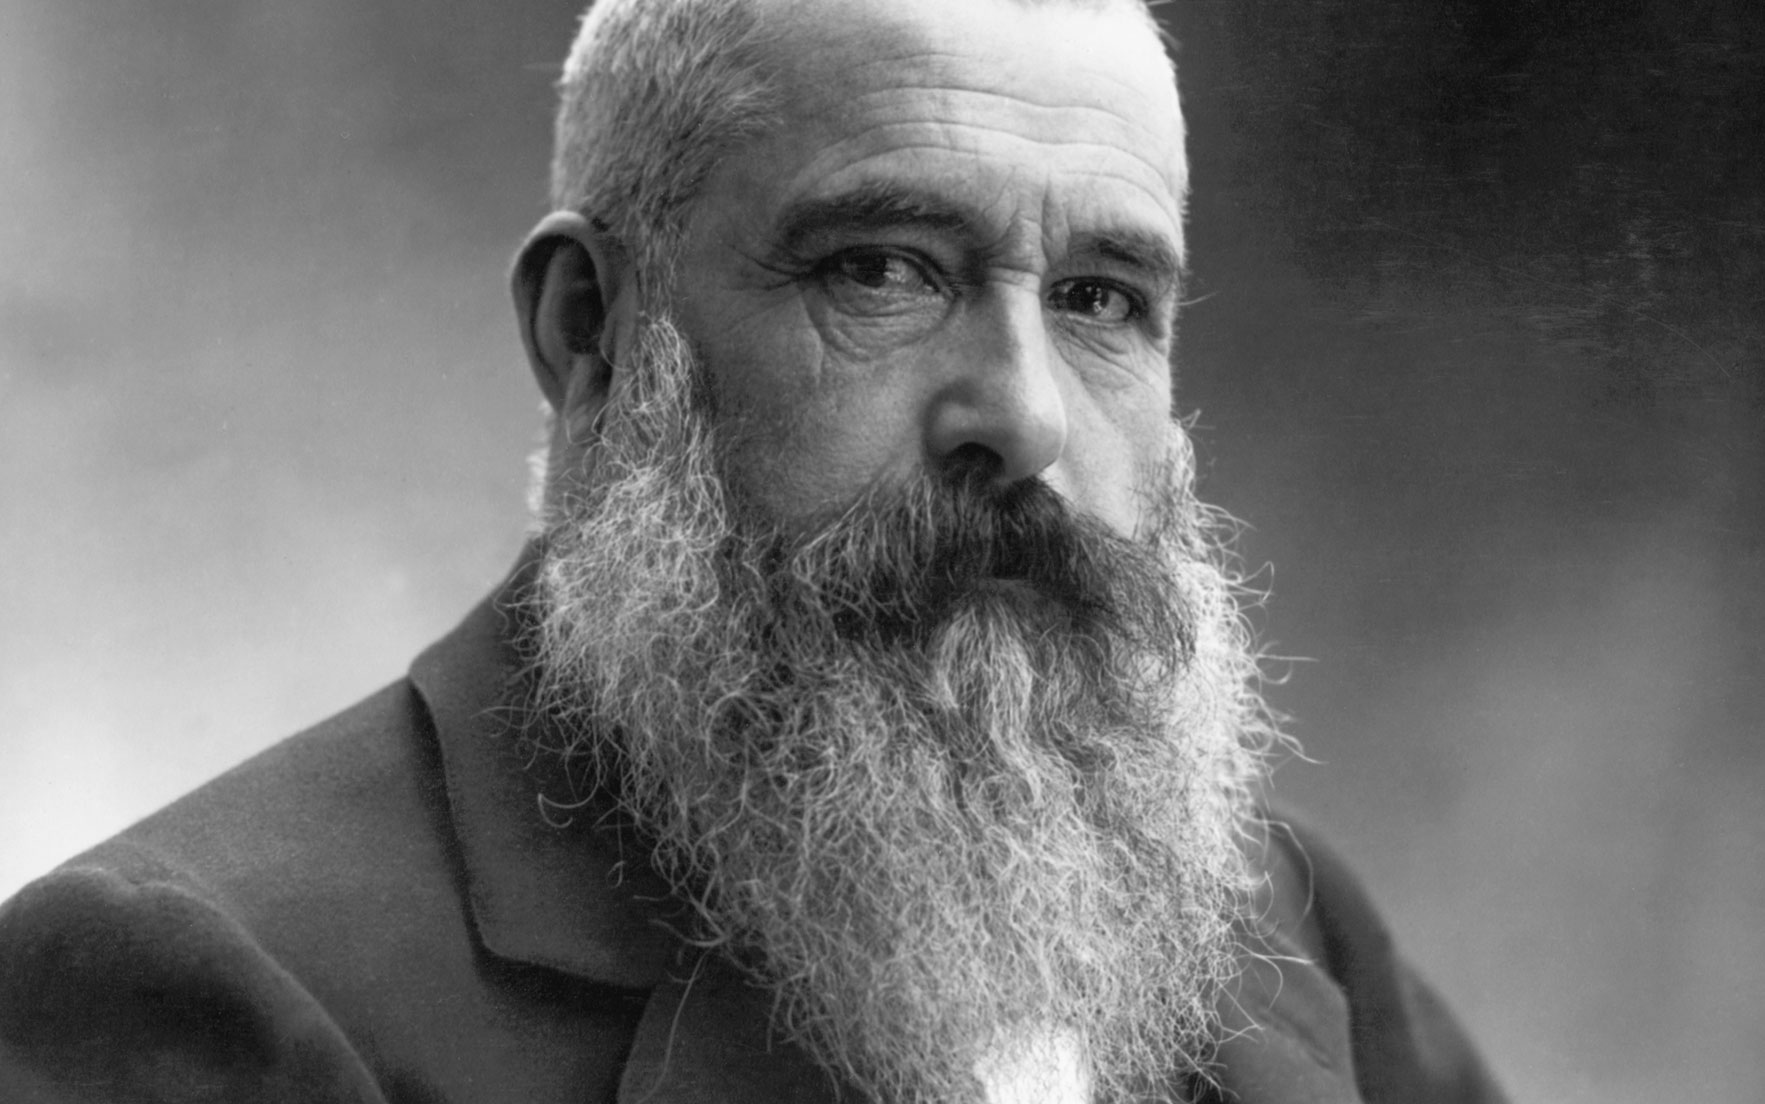 Claude Monet photographed by Nadar in 1899. © Photo BettmannGetty Images       .full-screen .image-preview { background-position 50% 30%!important; }